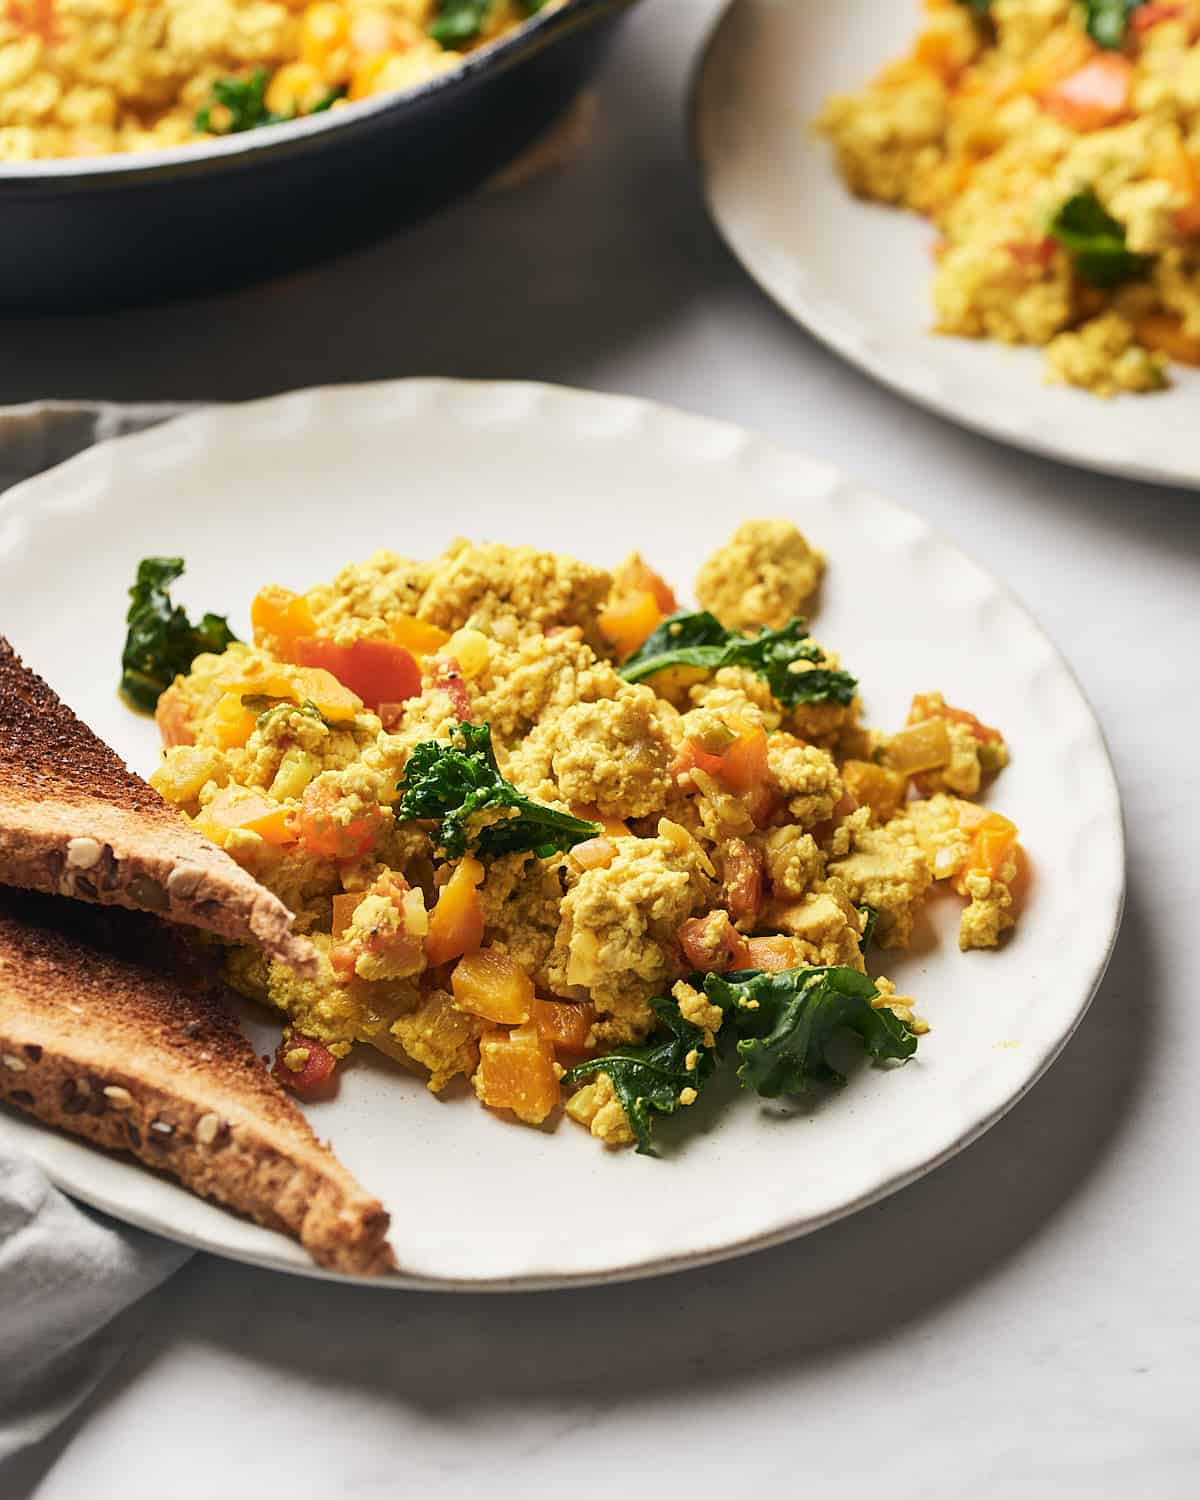 side view of scrambled tofu on plat with toast